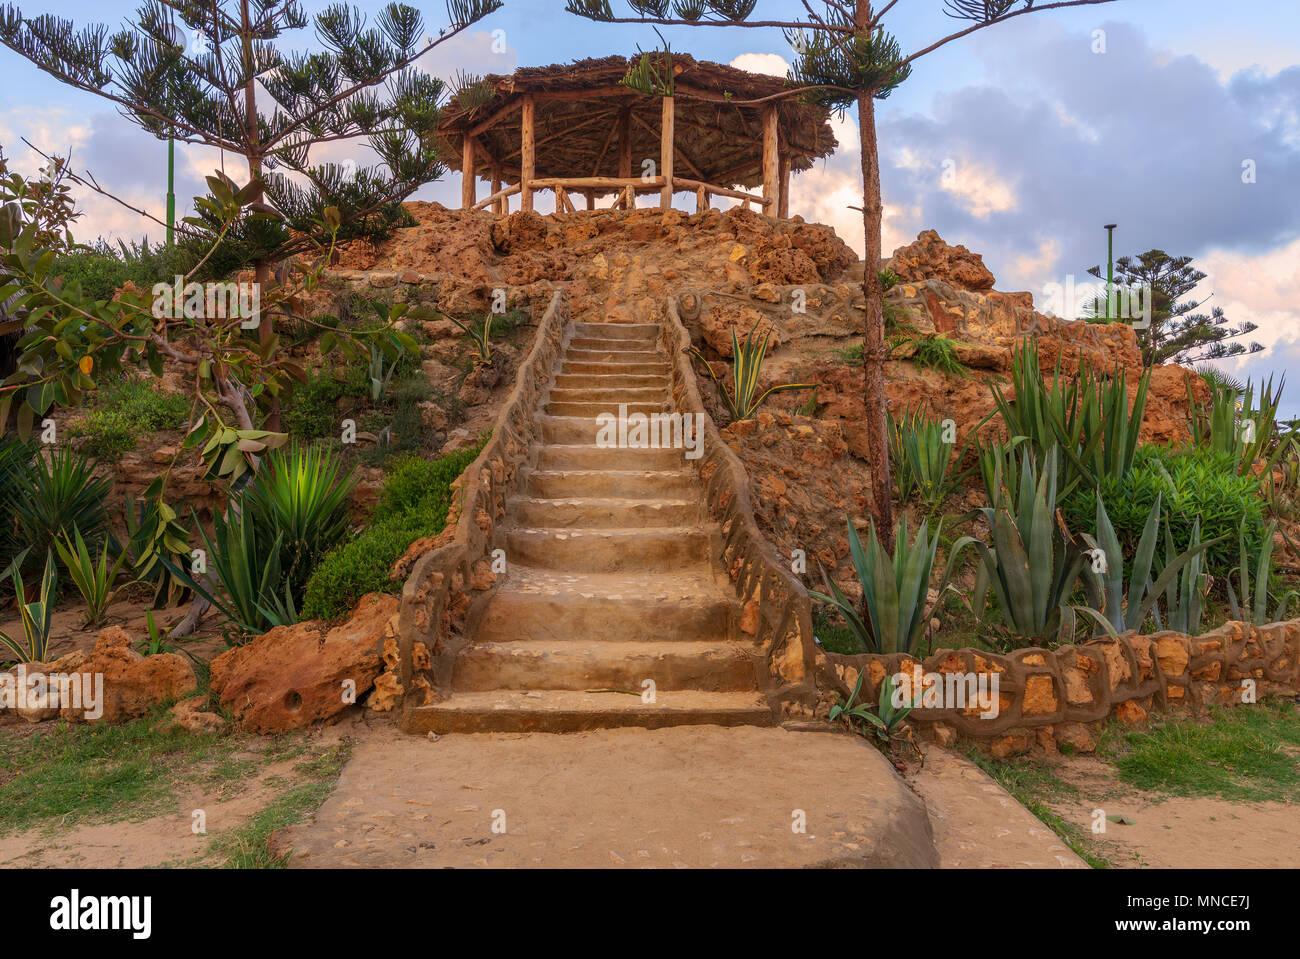 Natural stone stairway with green bushes on both sides leading to wooden pergola with partly cloudy sky at Montaza Park in summer time, Alexandria, Eg - Stock Image